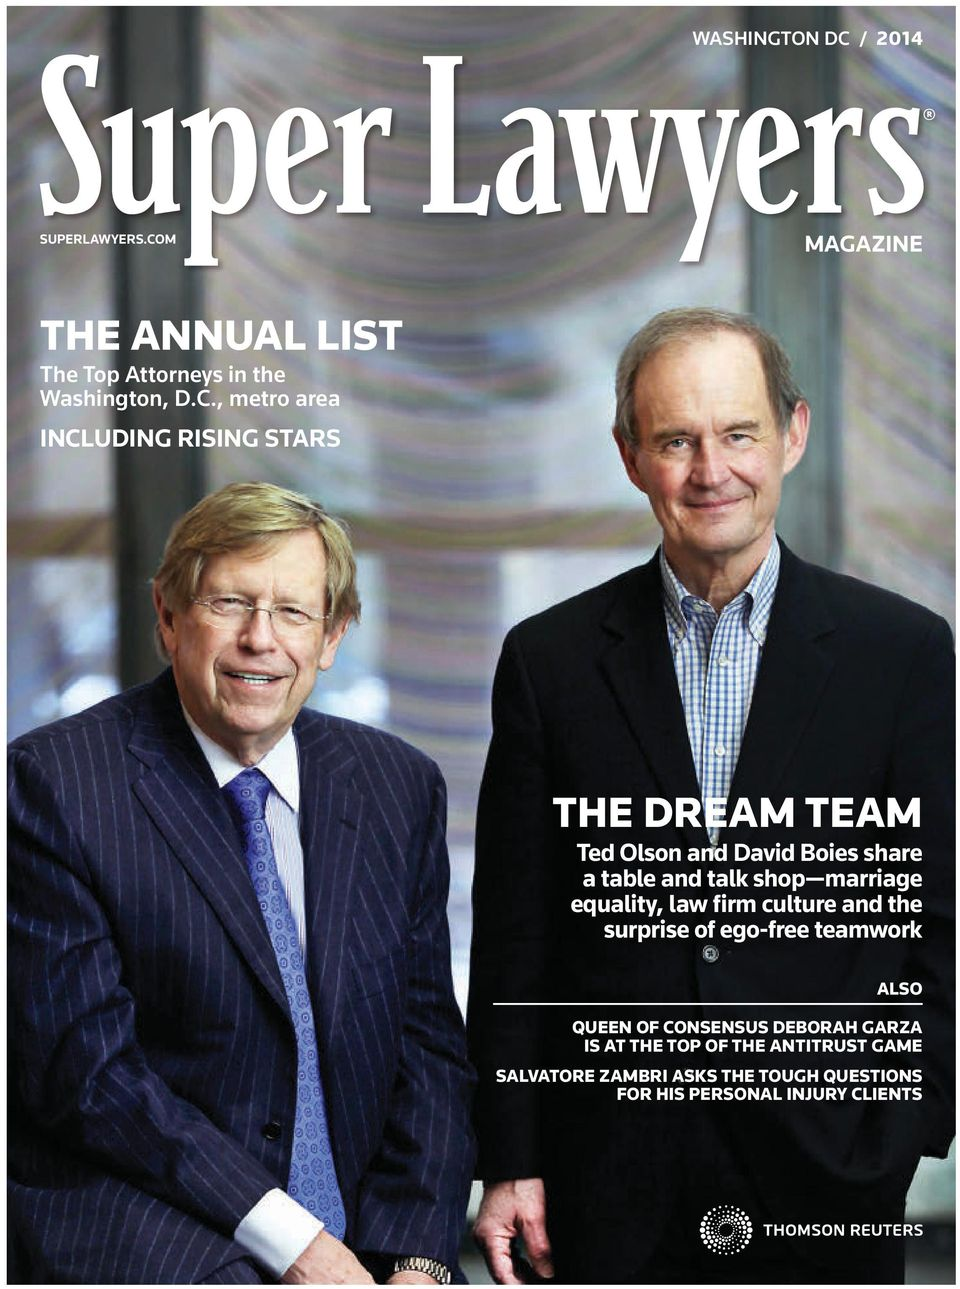 M MAGAZINE THE ANNUAL LIST The Top Attorneys in the Washington, D.C.